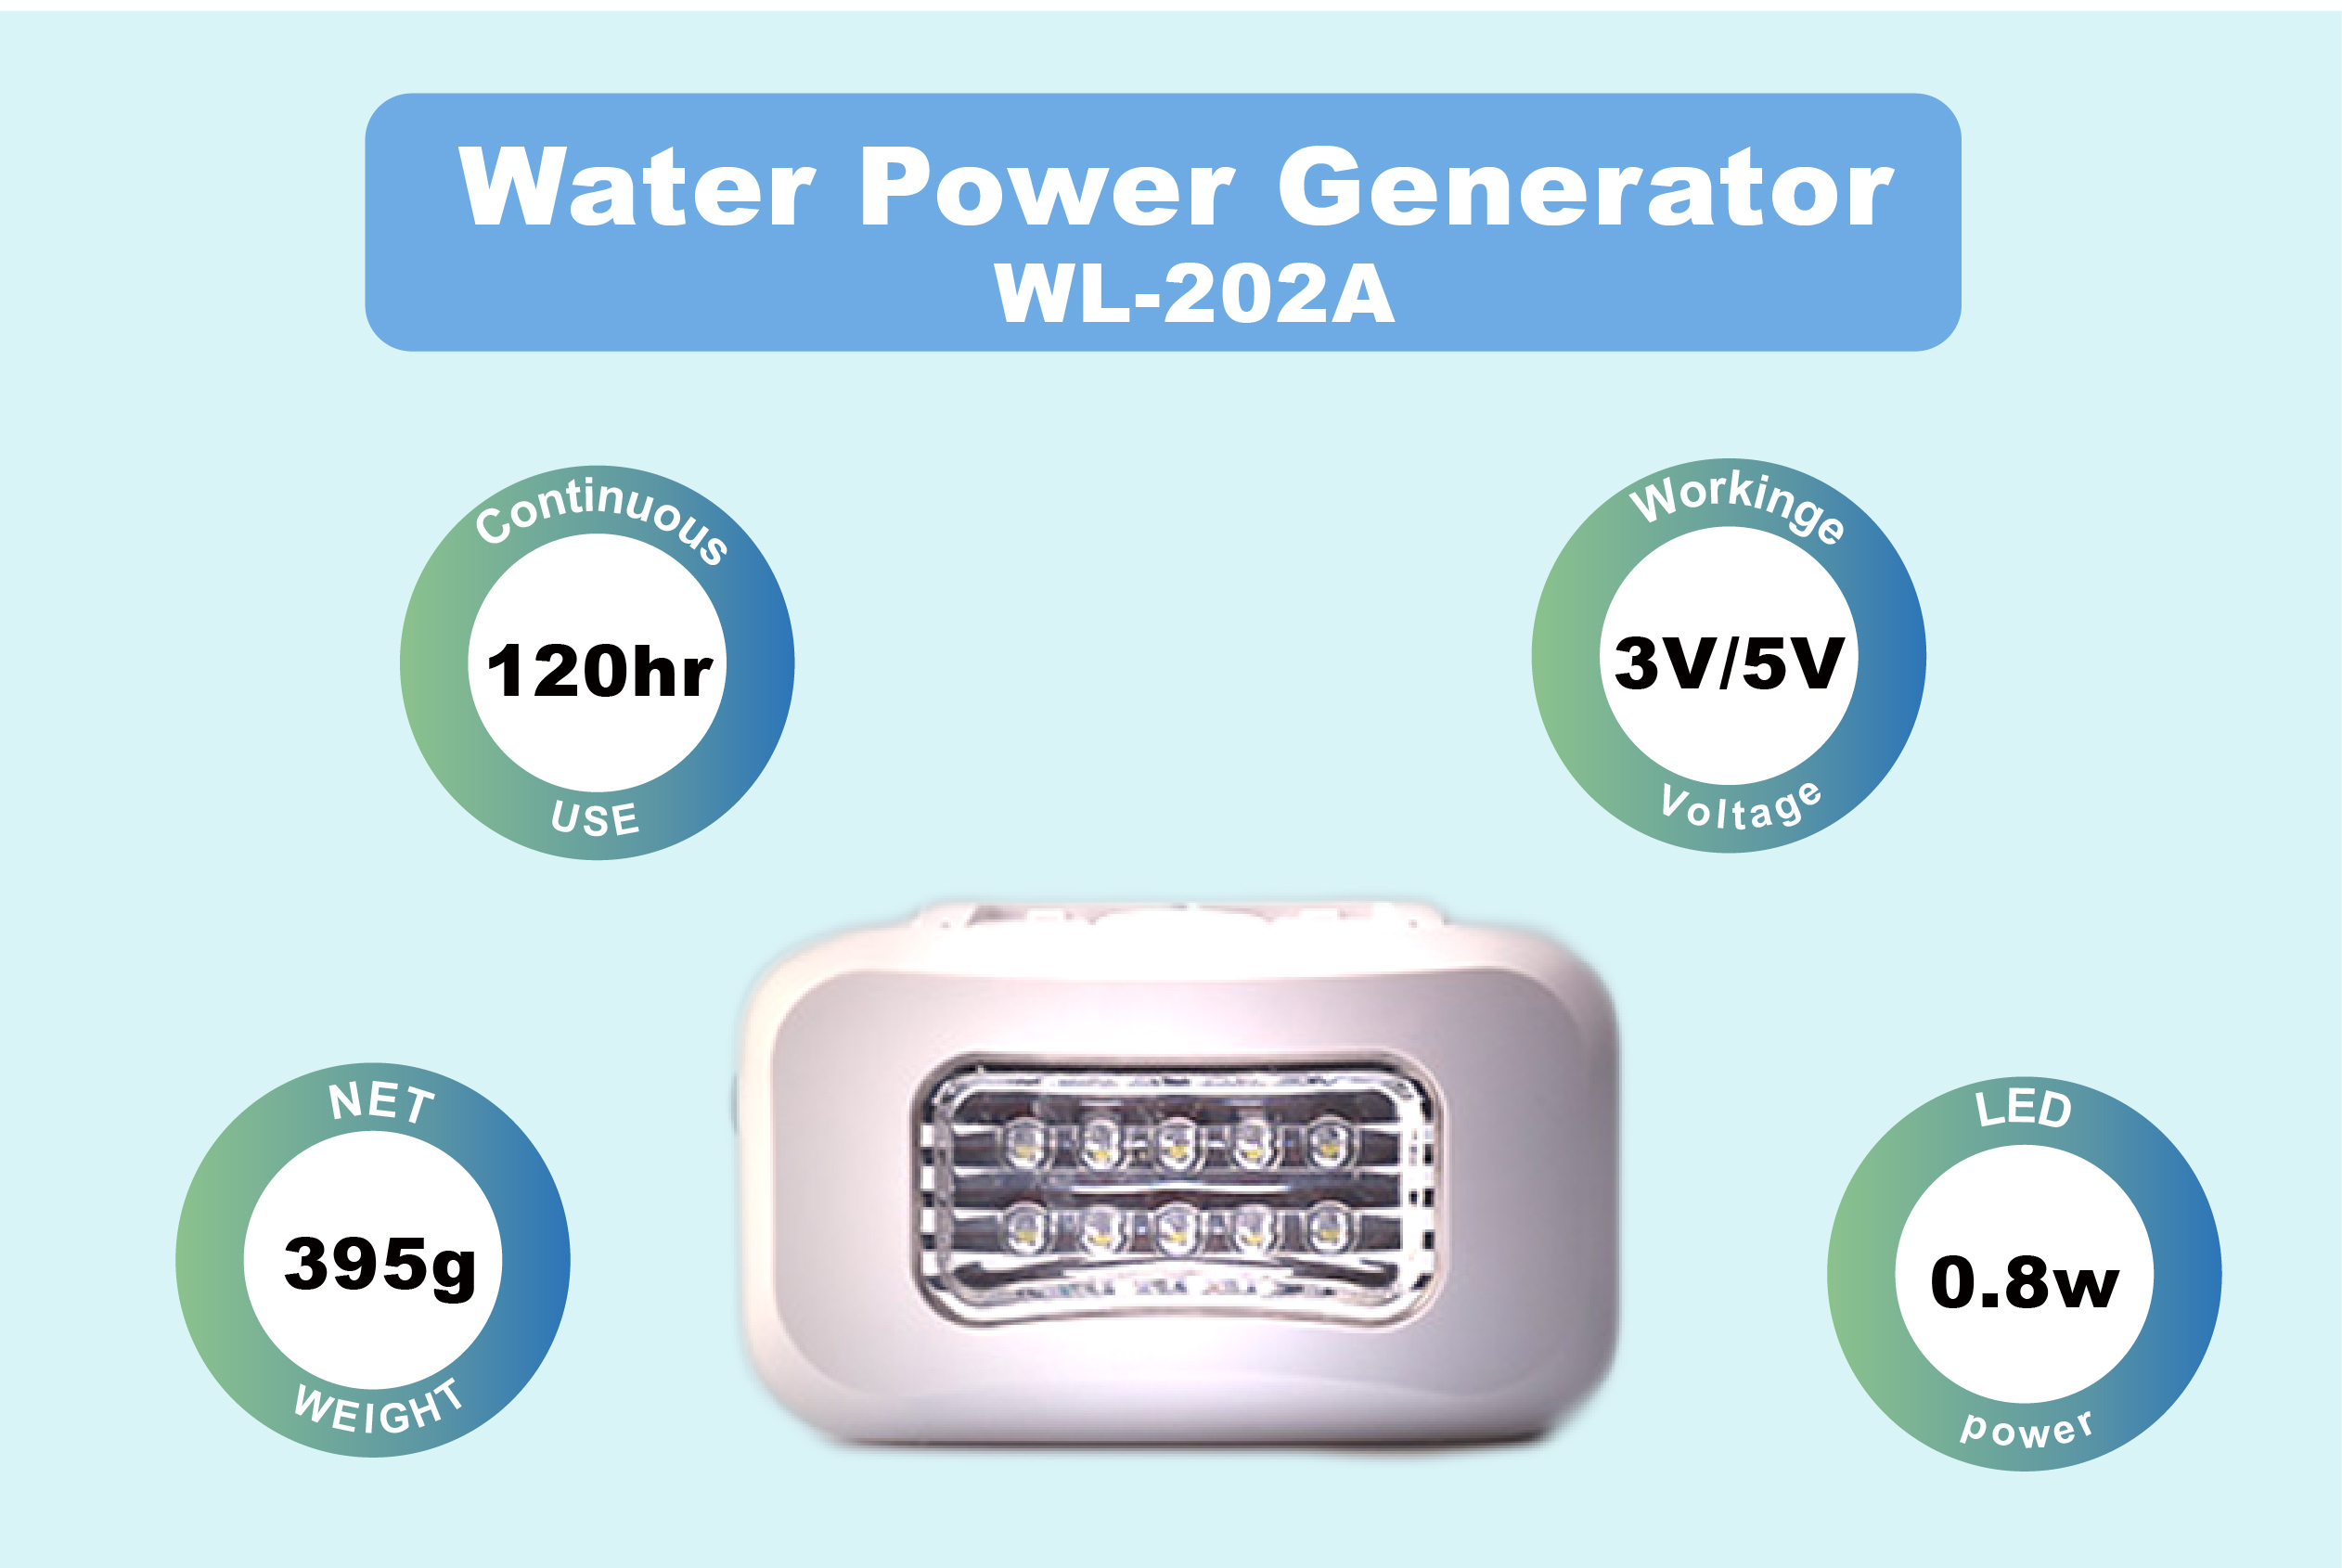 Water Power Bank/Generator#202A